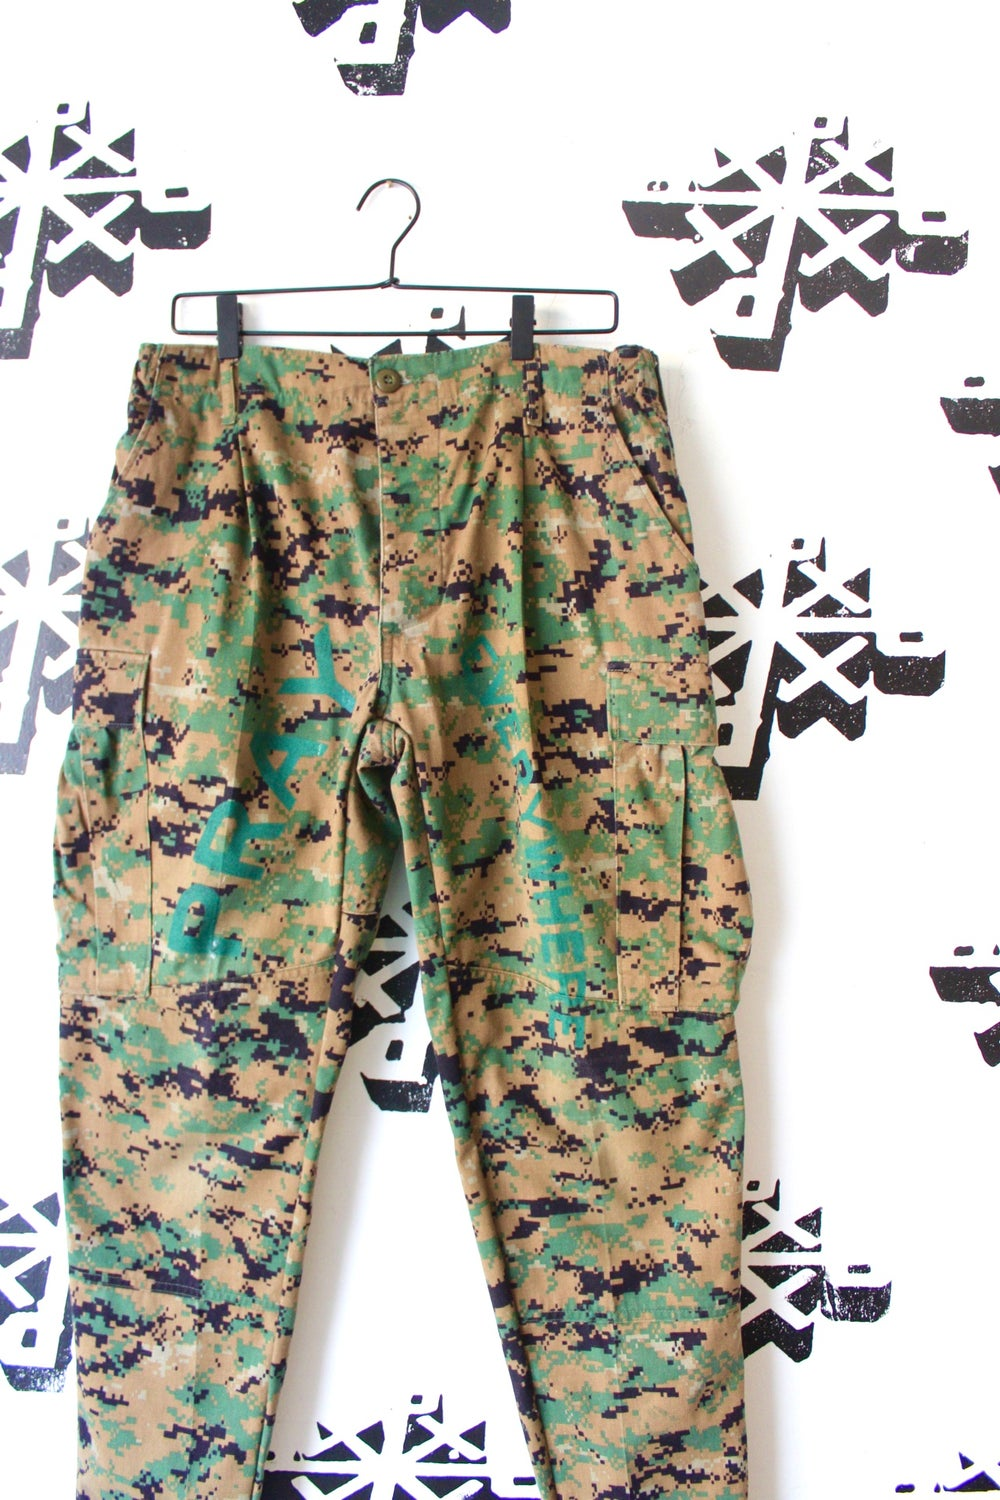 this how we coming camo cargo pants